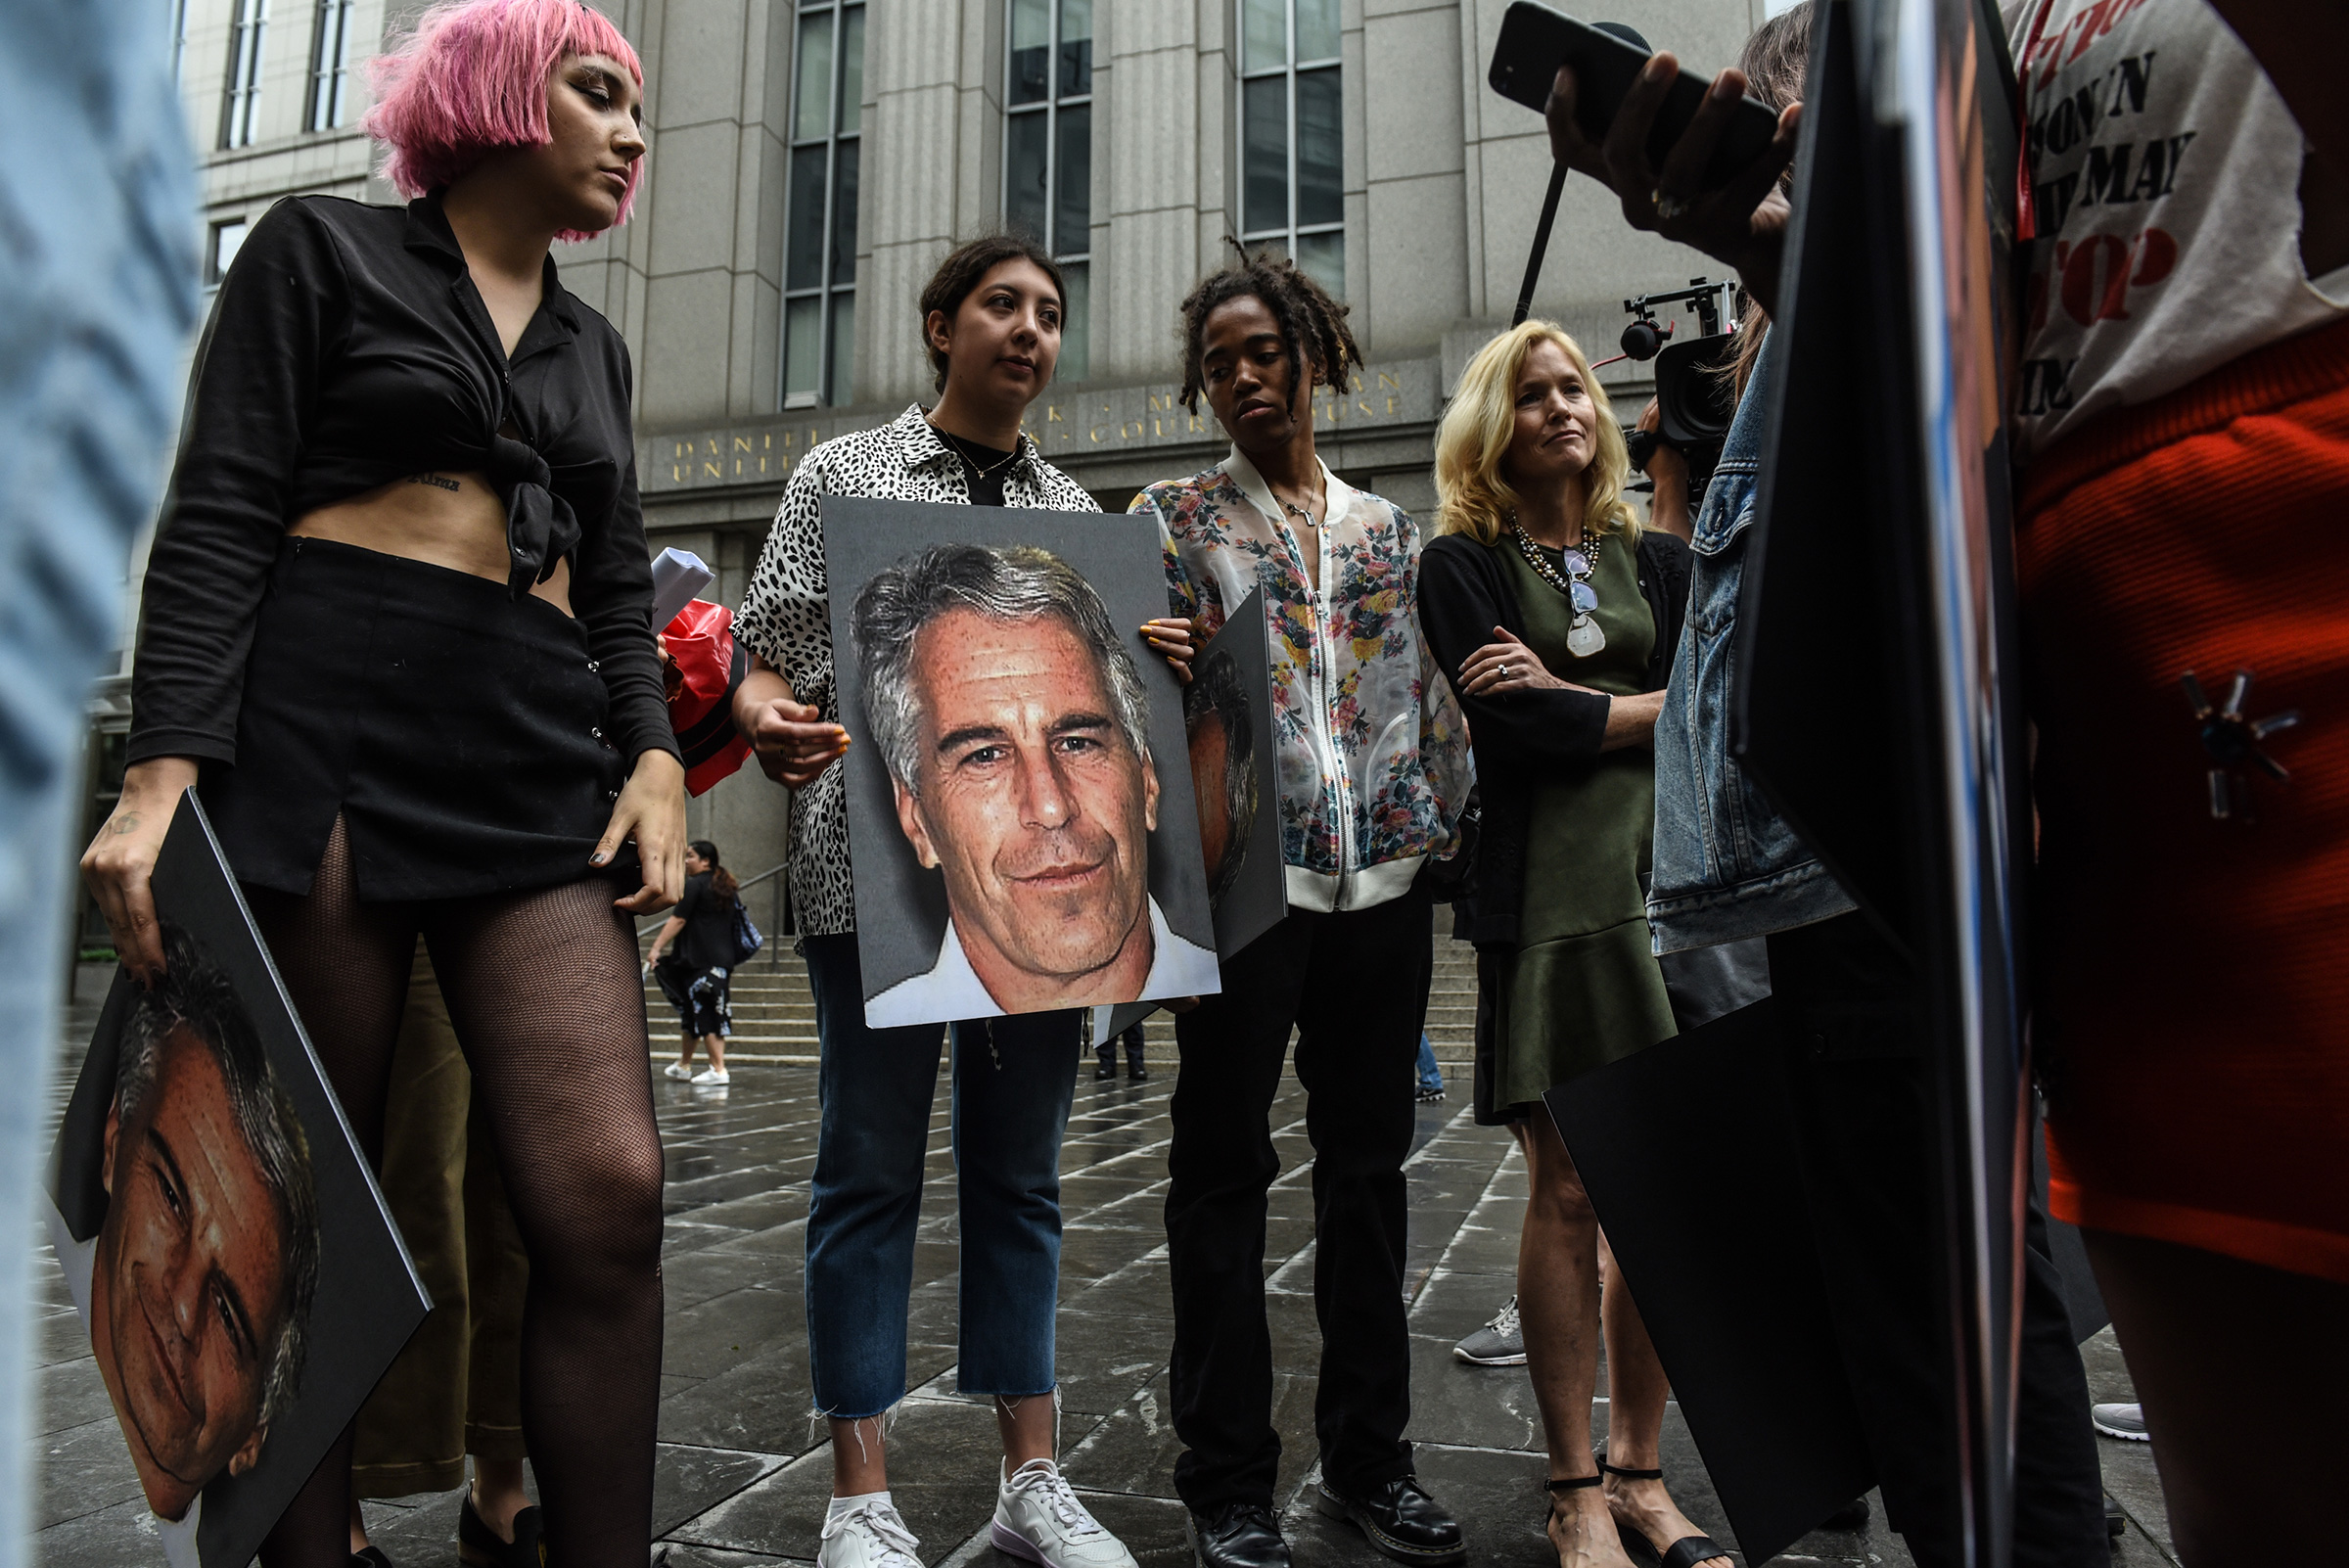 A protest group holds up signs of Jeffrey Epstein in front of the federal courthouse in New York City, July 8, 2019